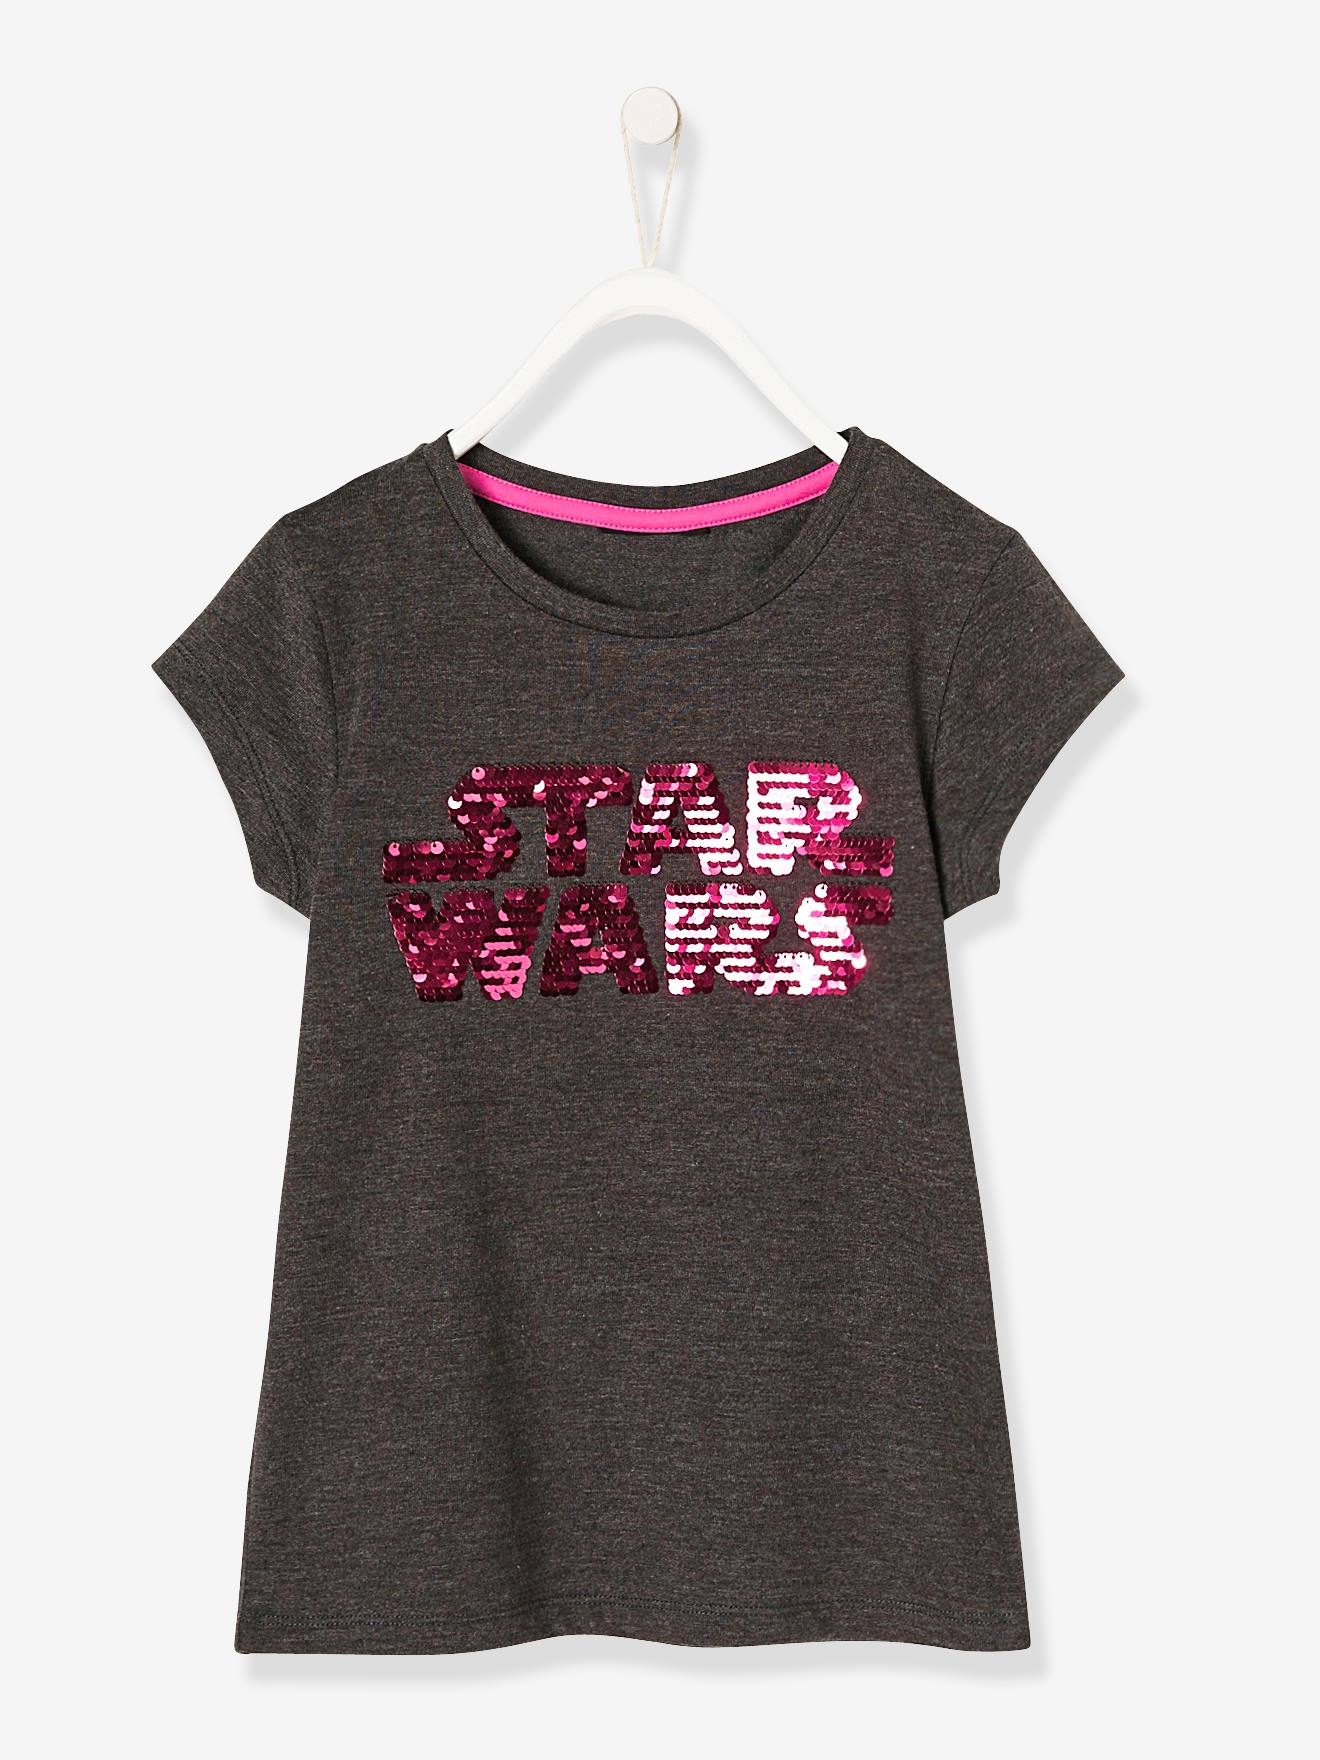 d8a5cd262 fabulous girls star wars tshirt with reversible sequins grey medium solid  with design with star wars t shirt